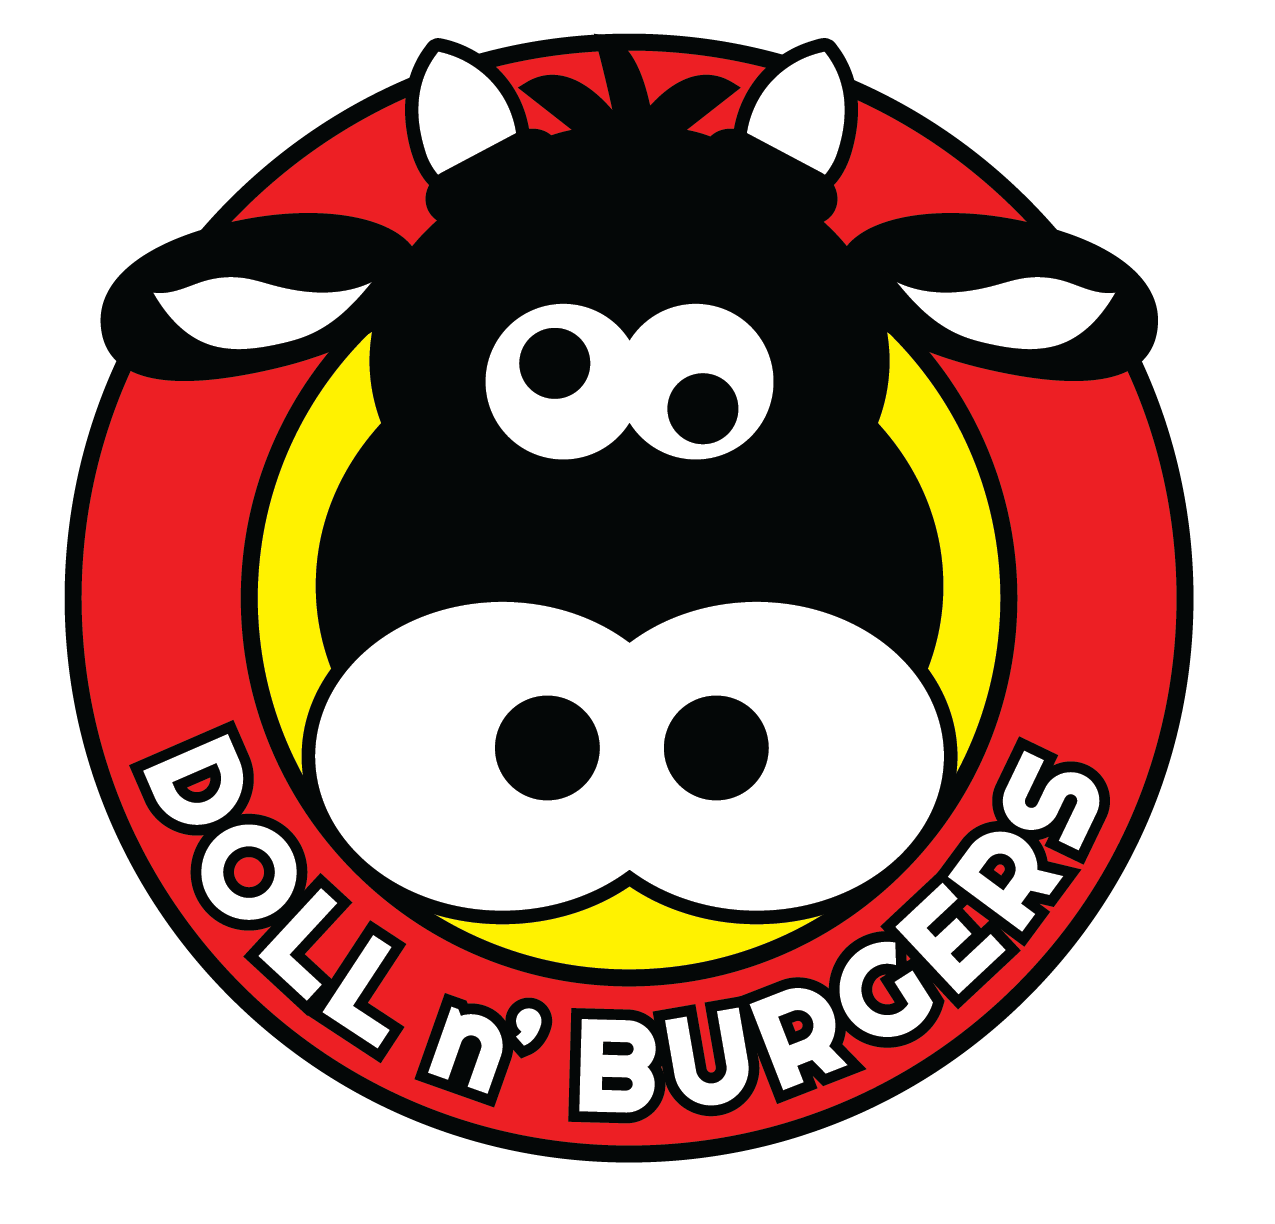 DollnBurger LOGO